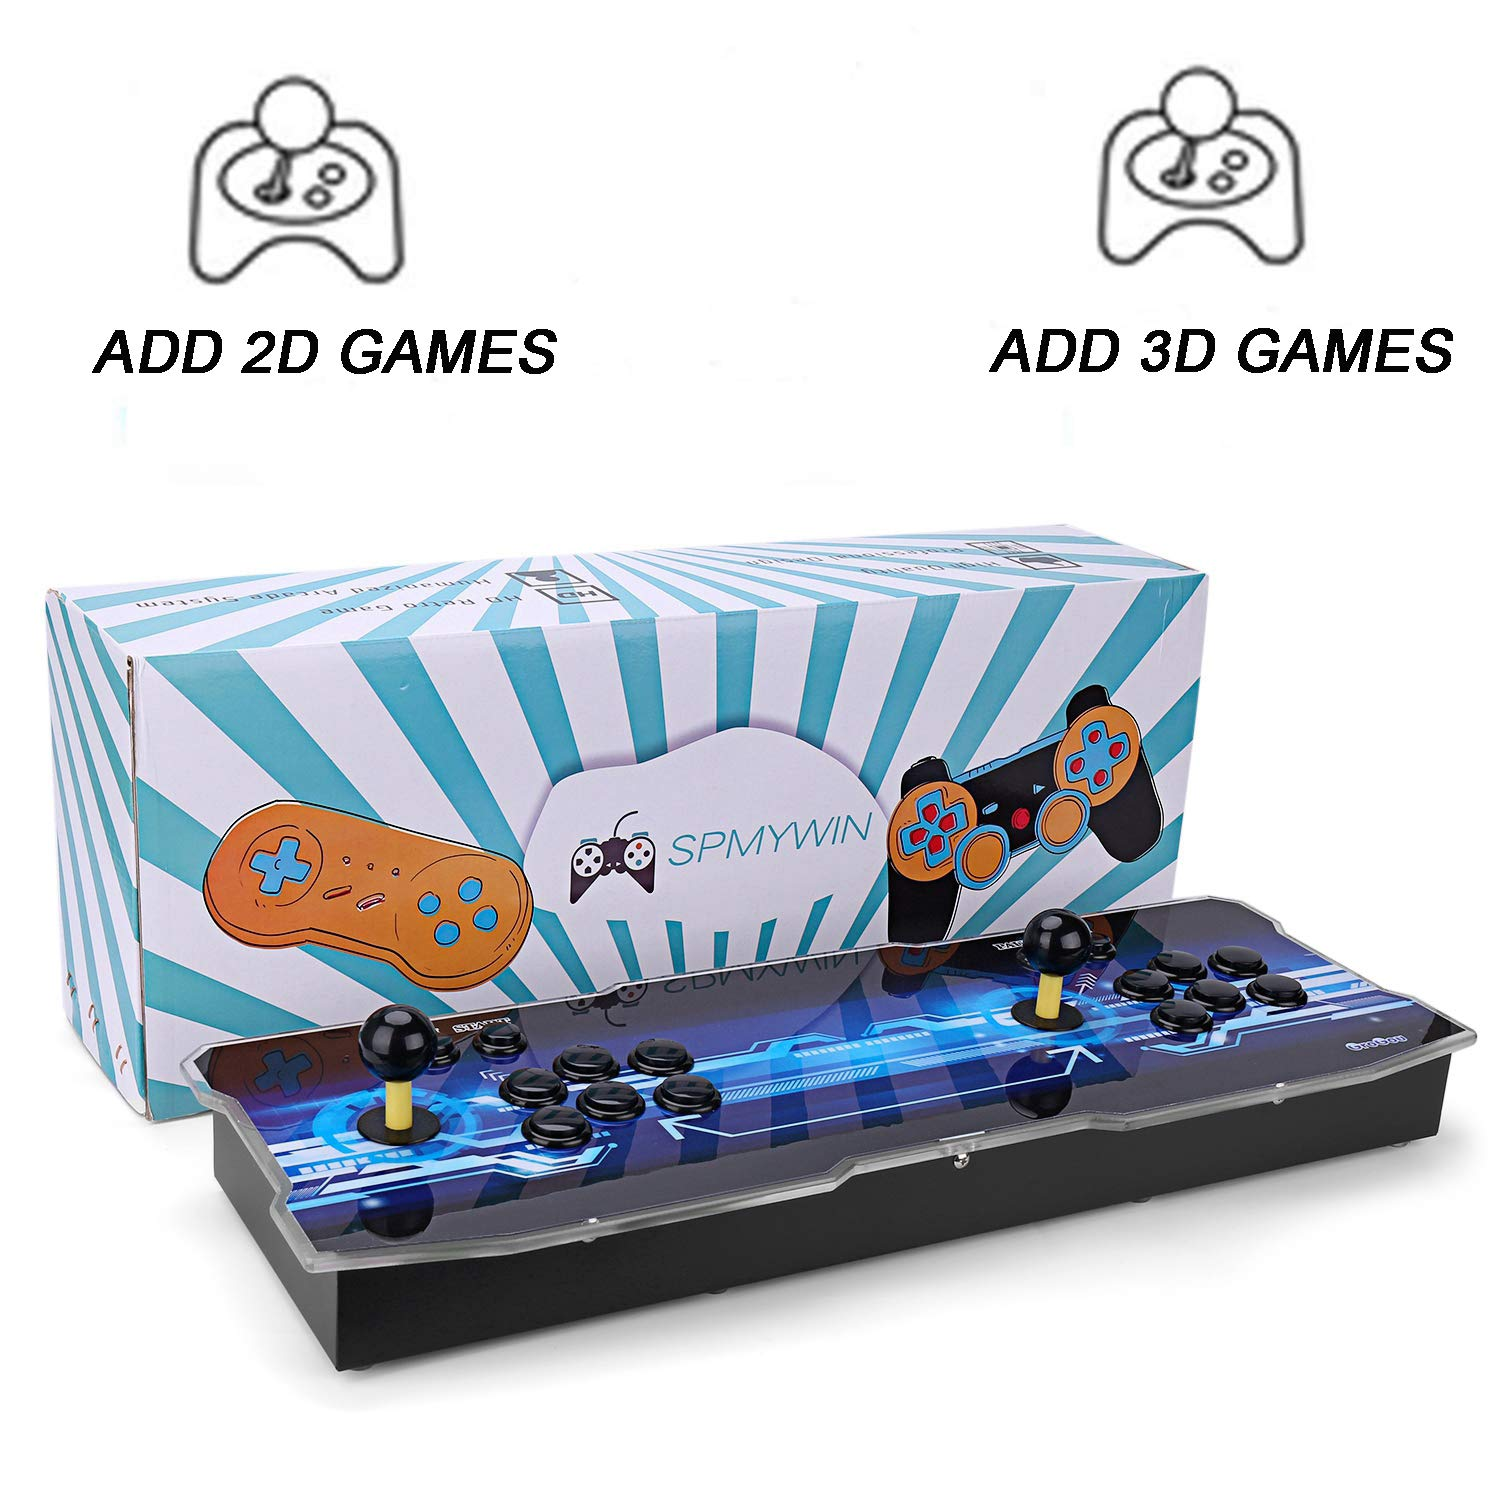 Spmywin 3D Pandora's Key 7 Arcade Video Game Console 1080P Game System Support Expand 2D 3D Games Function Advanced CPU Mini Arcade Come with a 32G U Drive by Spmywin (Image #1)